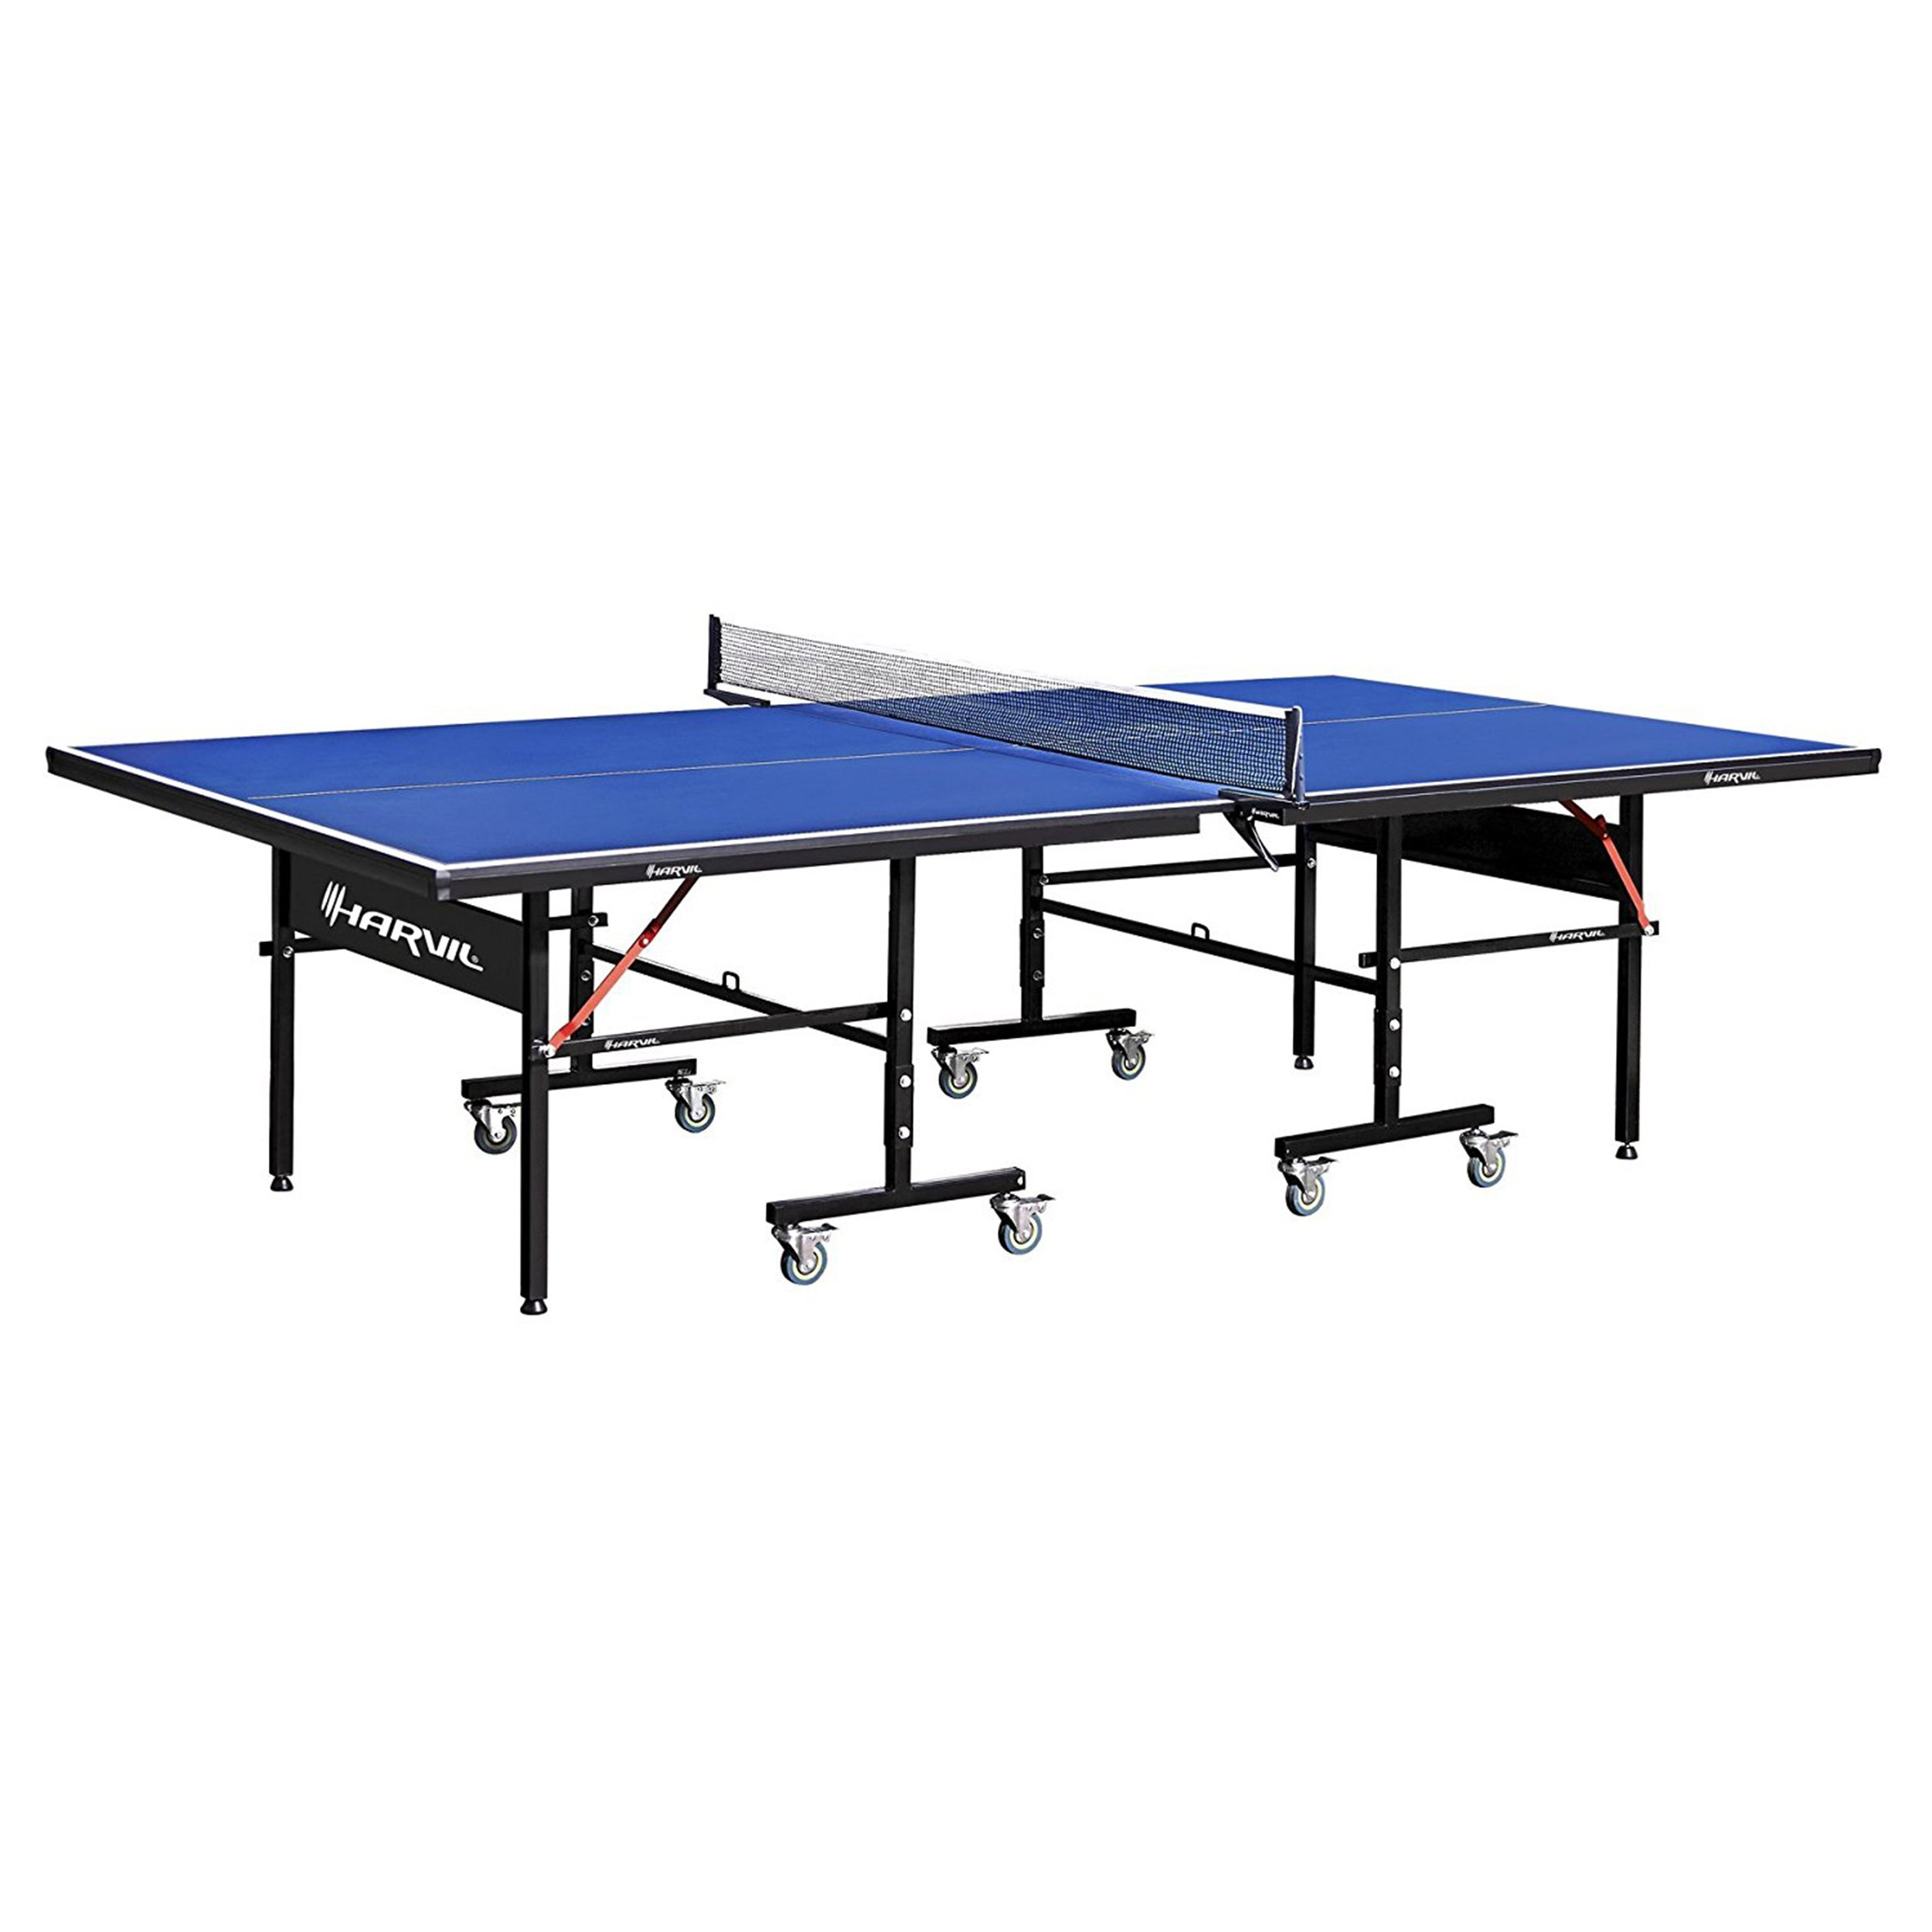 Harvil I, Indoor Table Tennis Table with Playback Feature and Locking Wheels